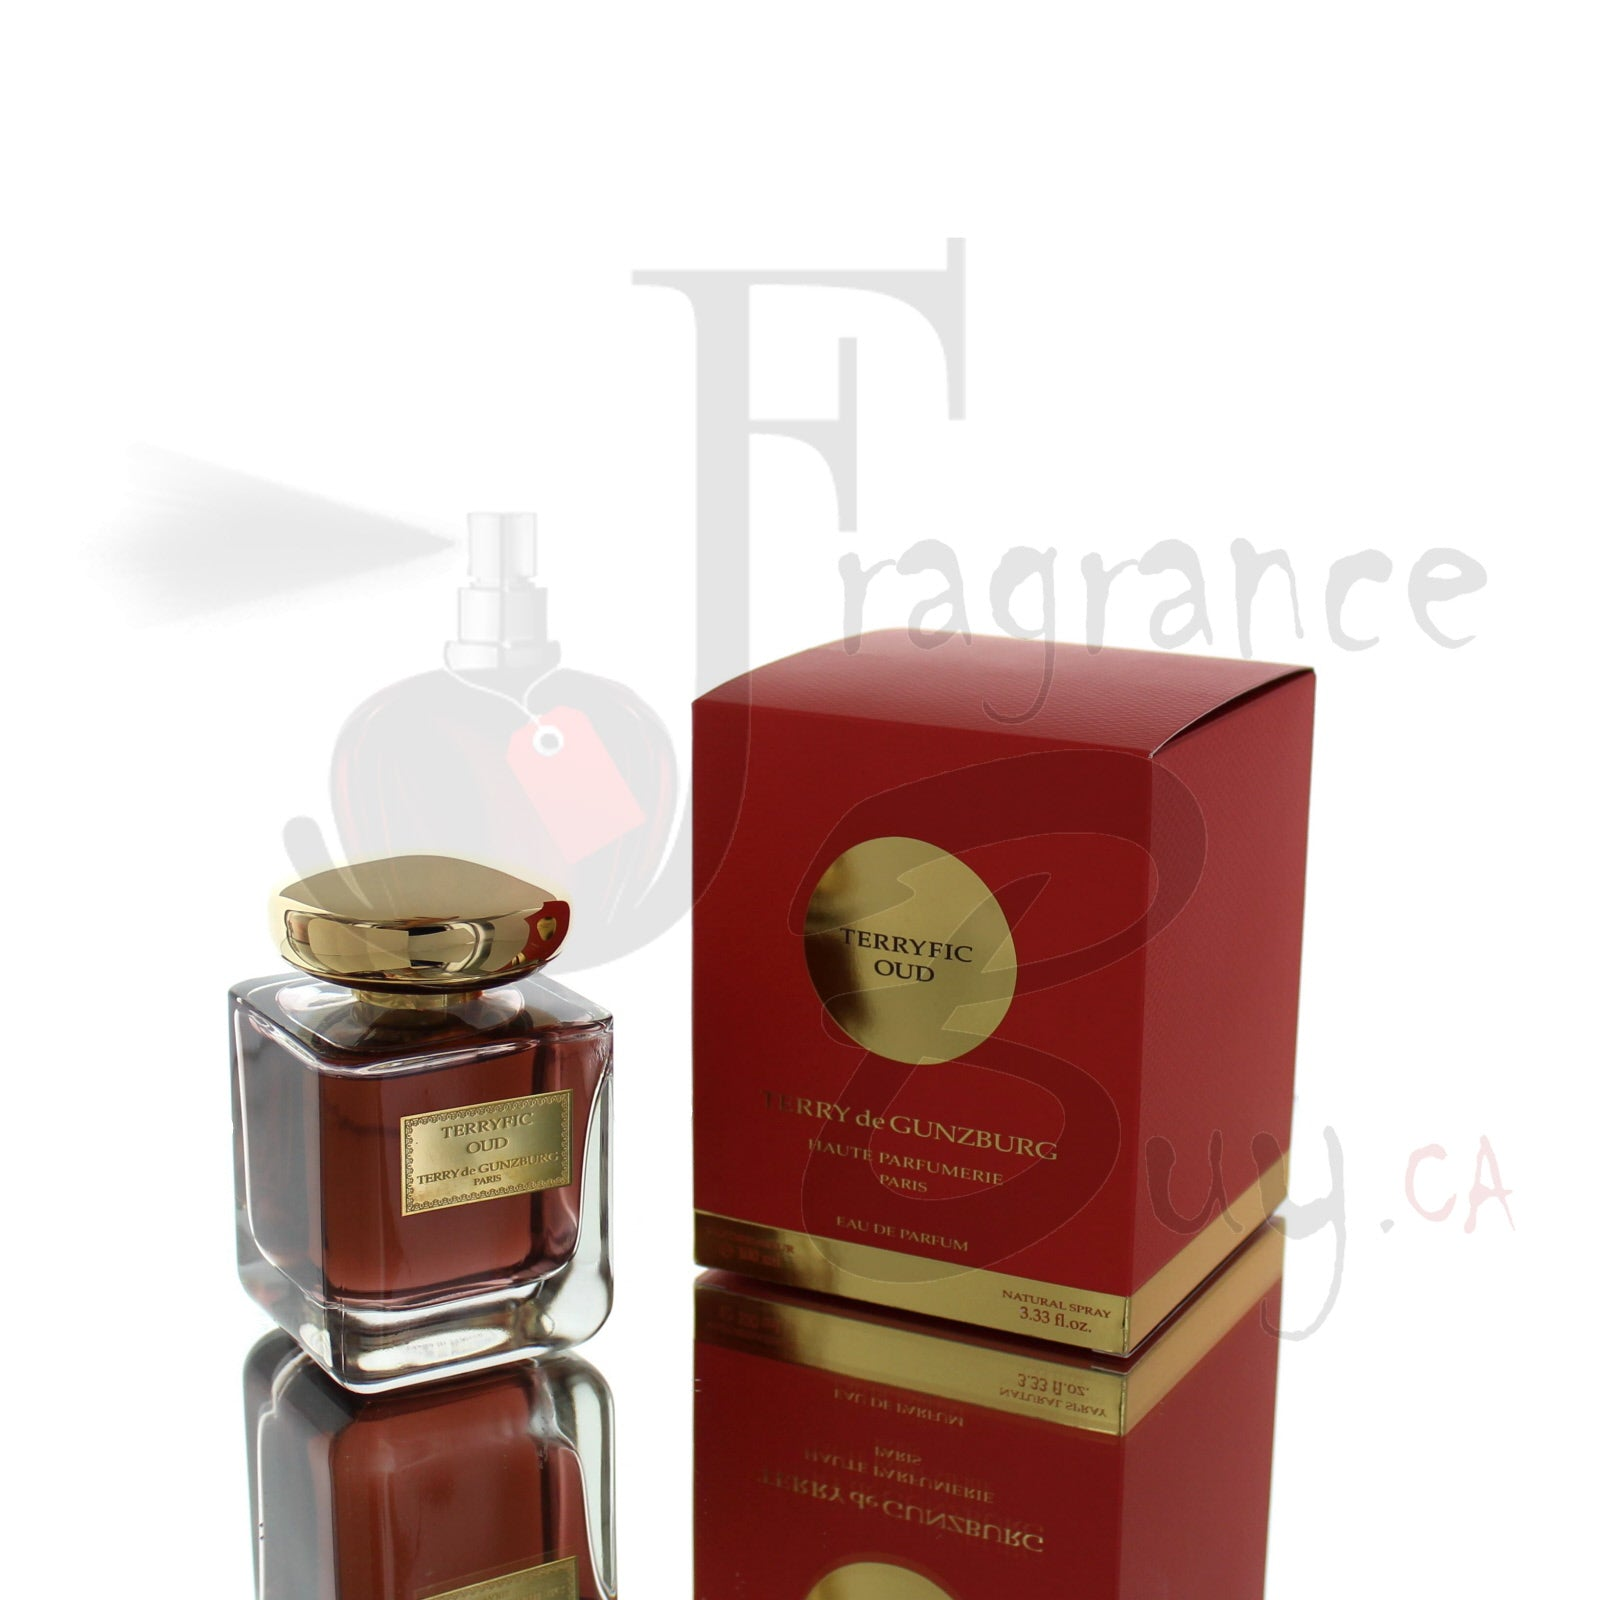 Terry De Gunzburg Terryfic Oud For Man/Woman